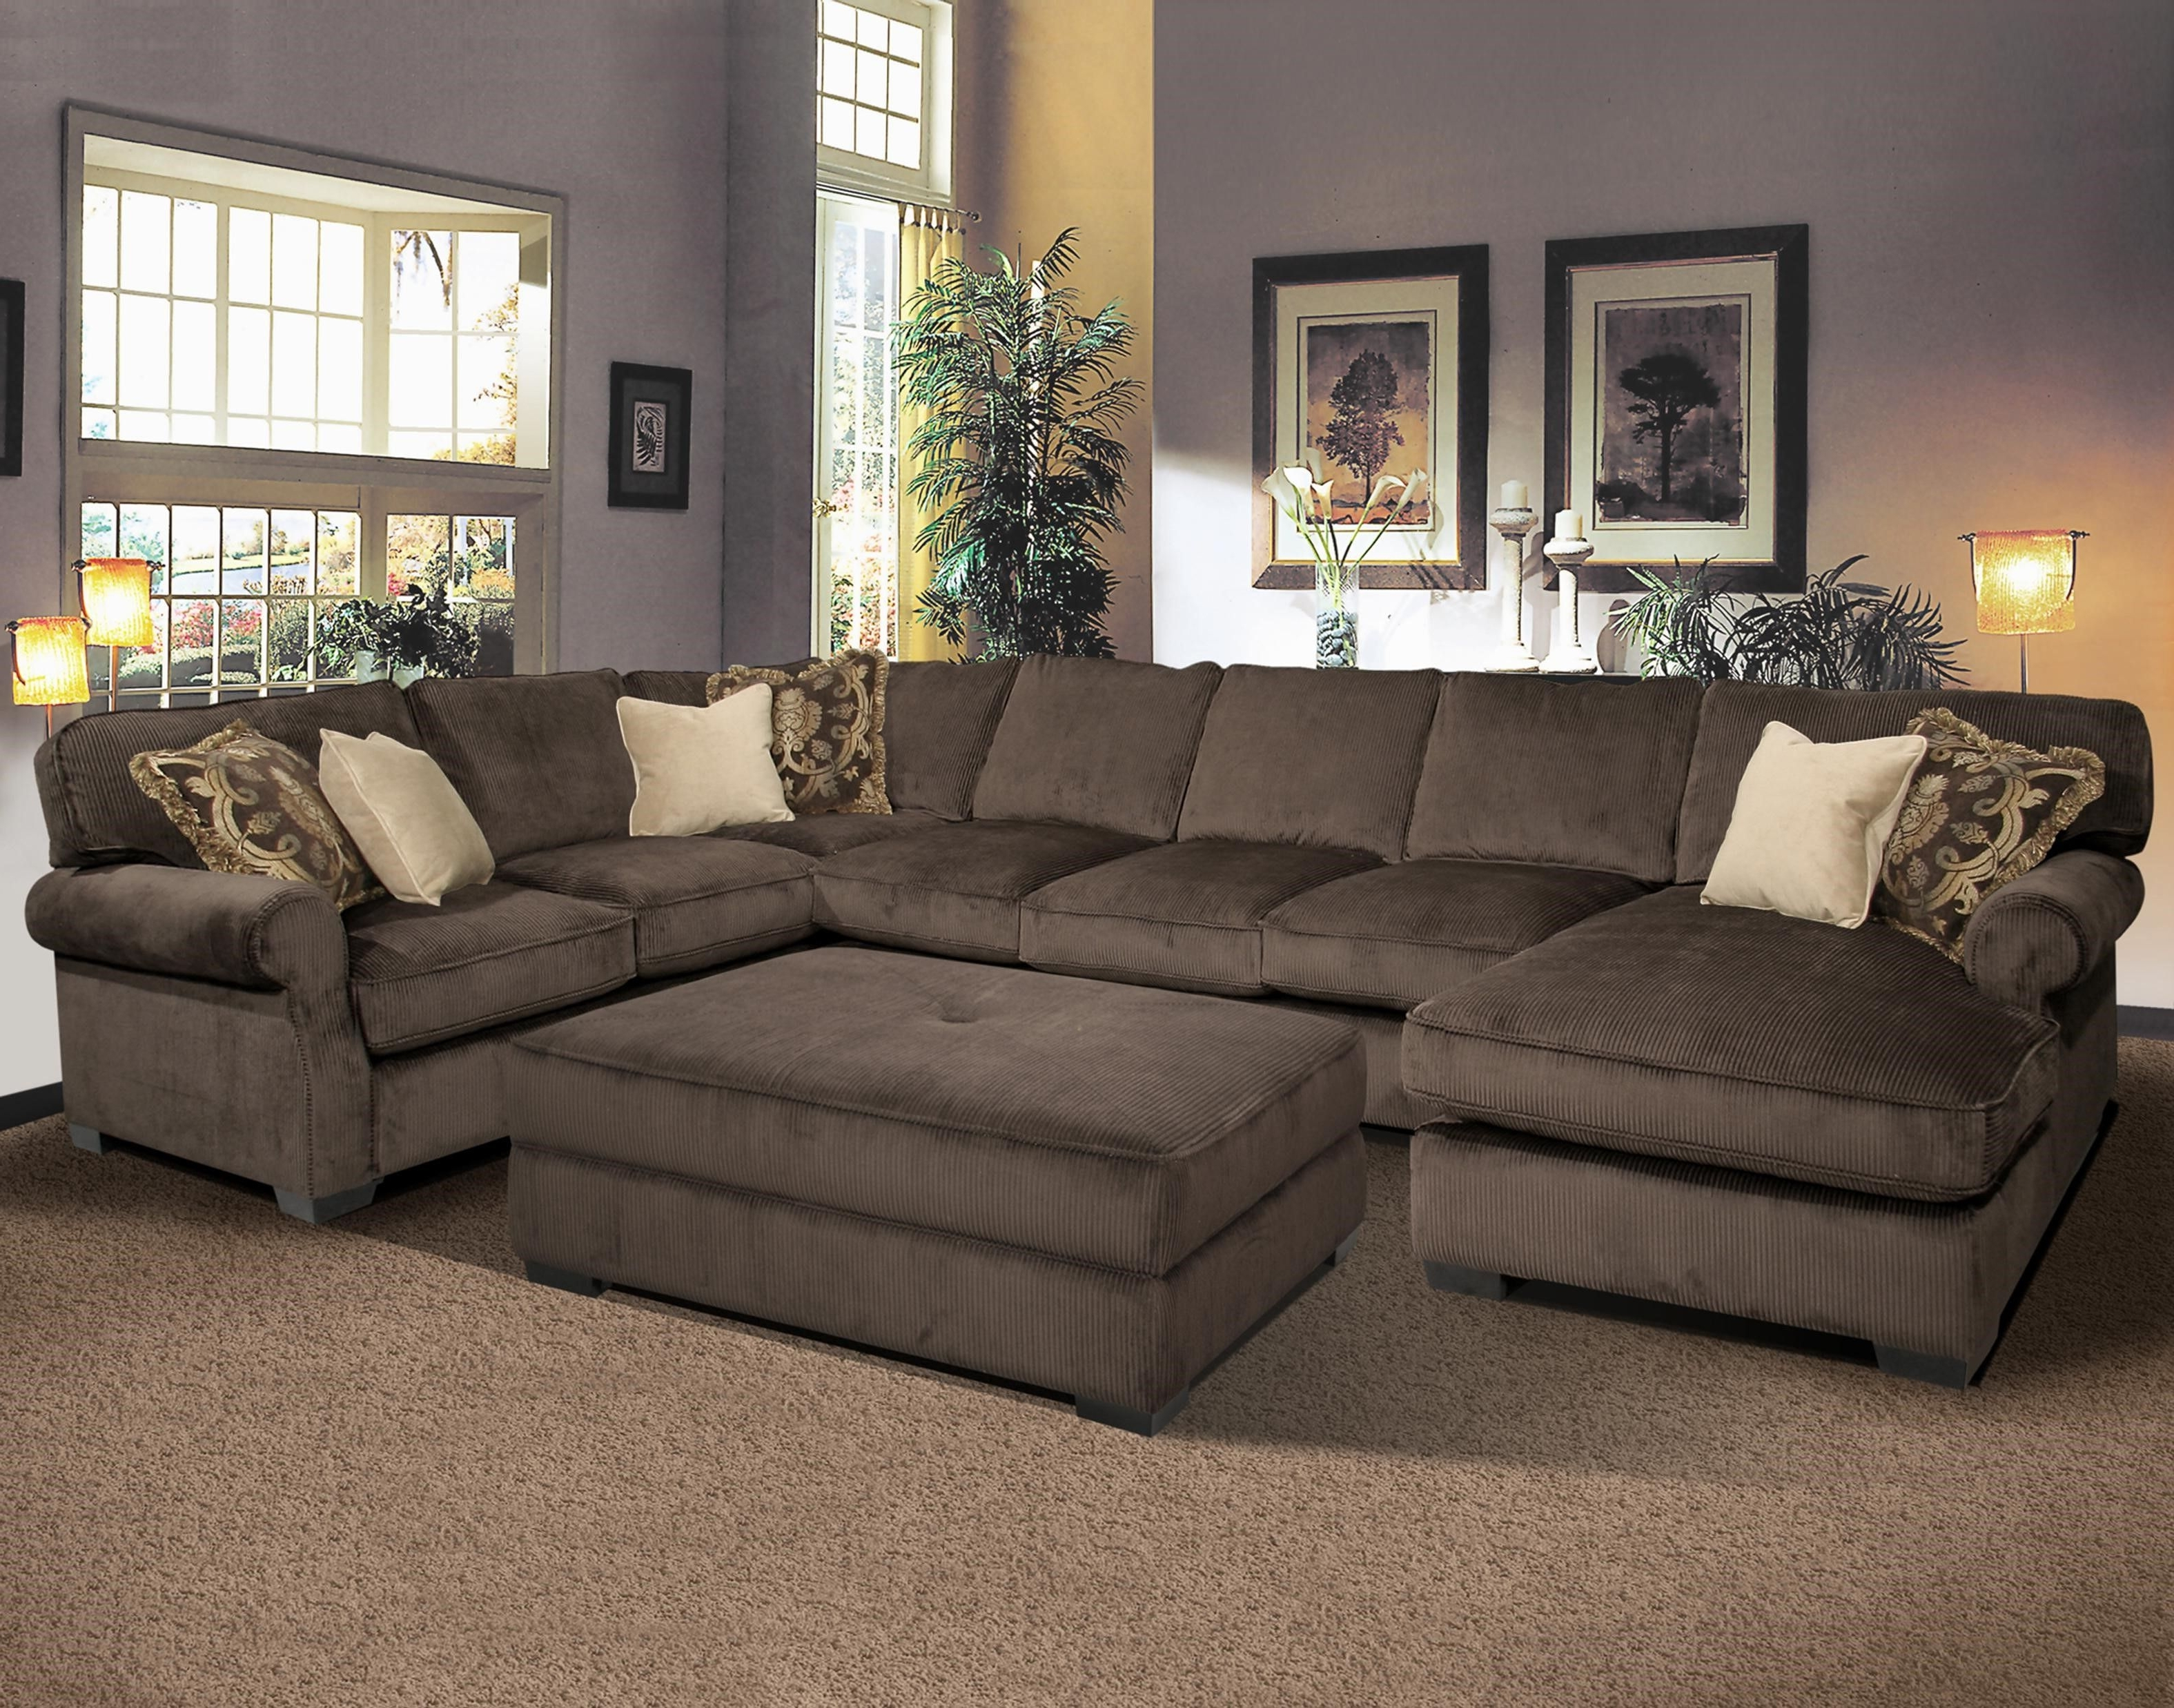 Well Known Goose Down Sectional Sofas Inside Comfortable Living Room Sofas Design With Elegant Overstuffed (View 2 of 15)